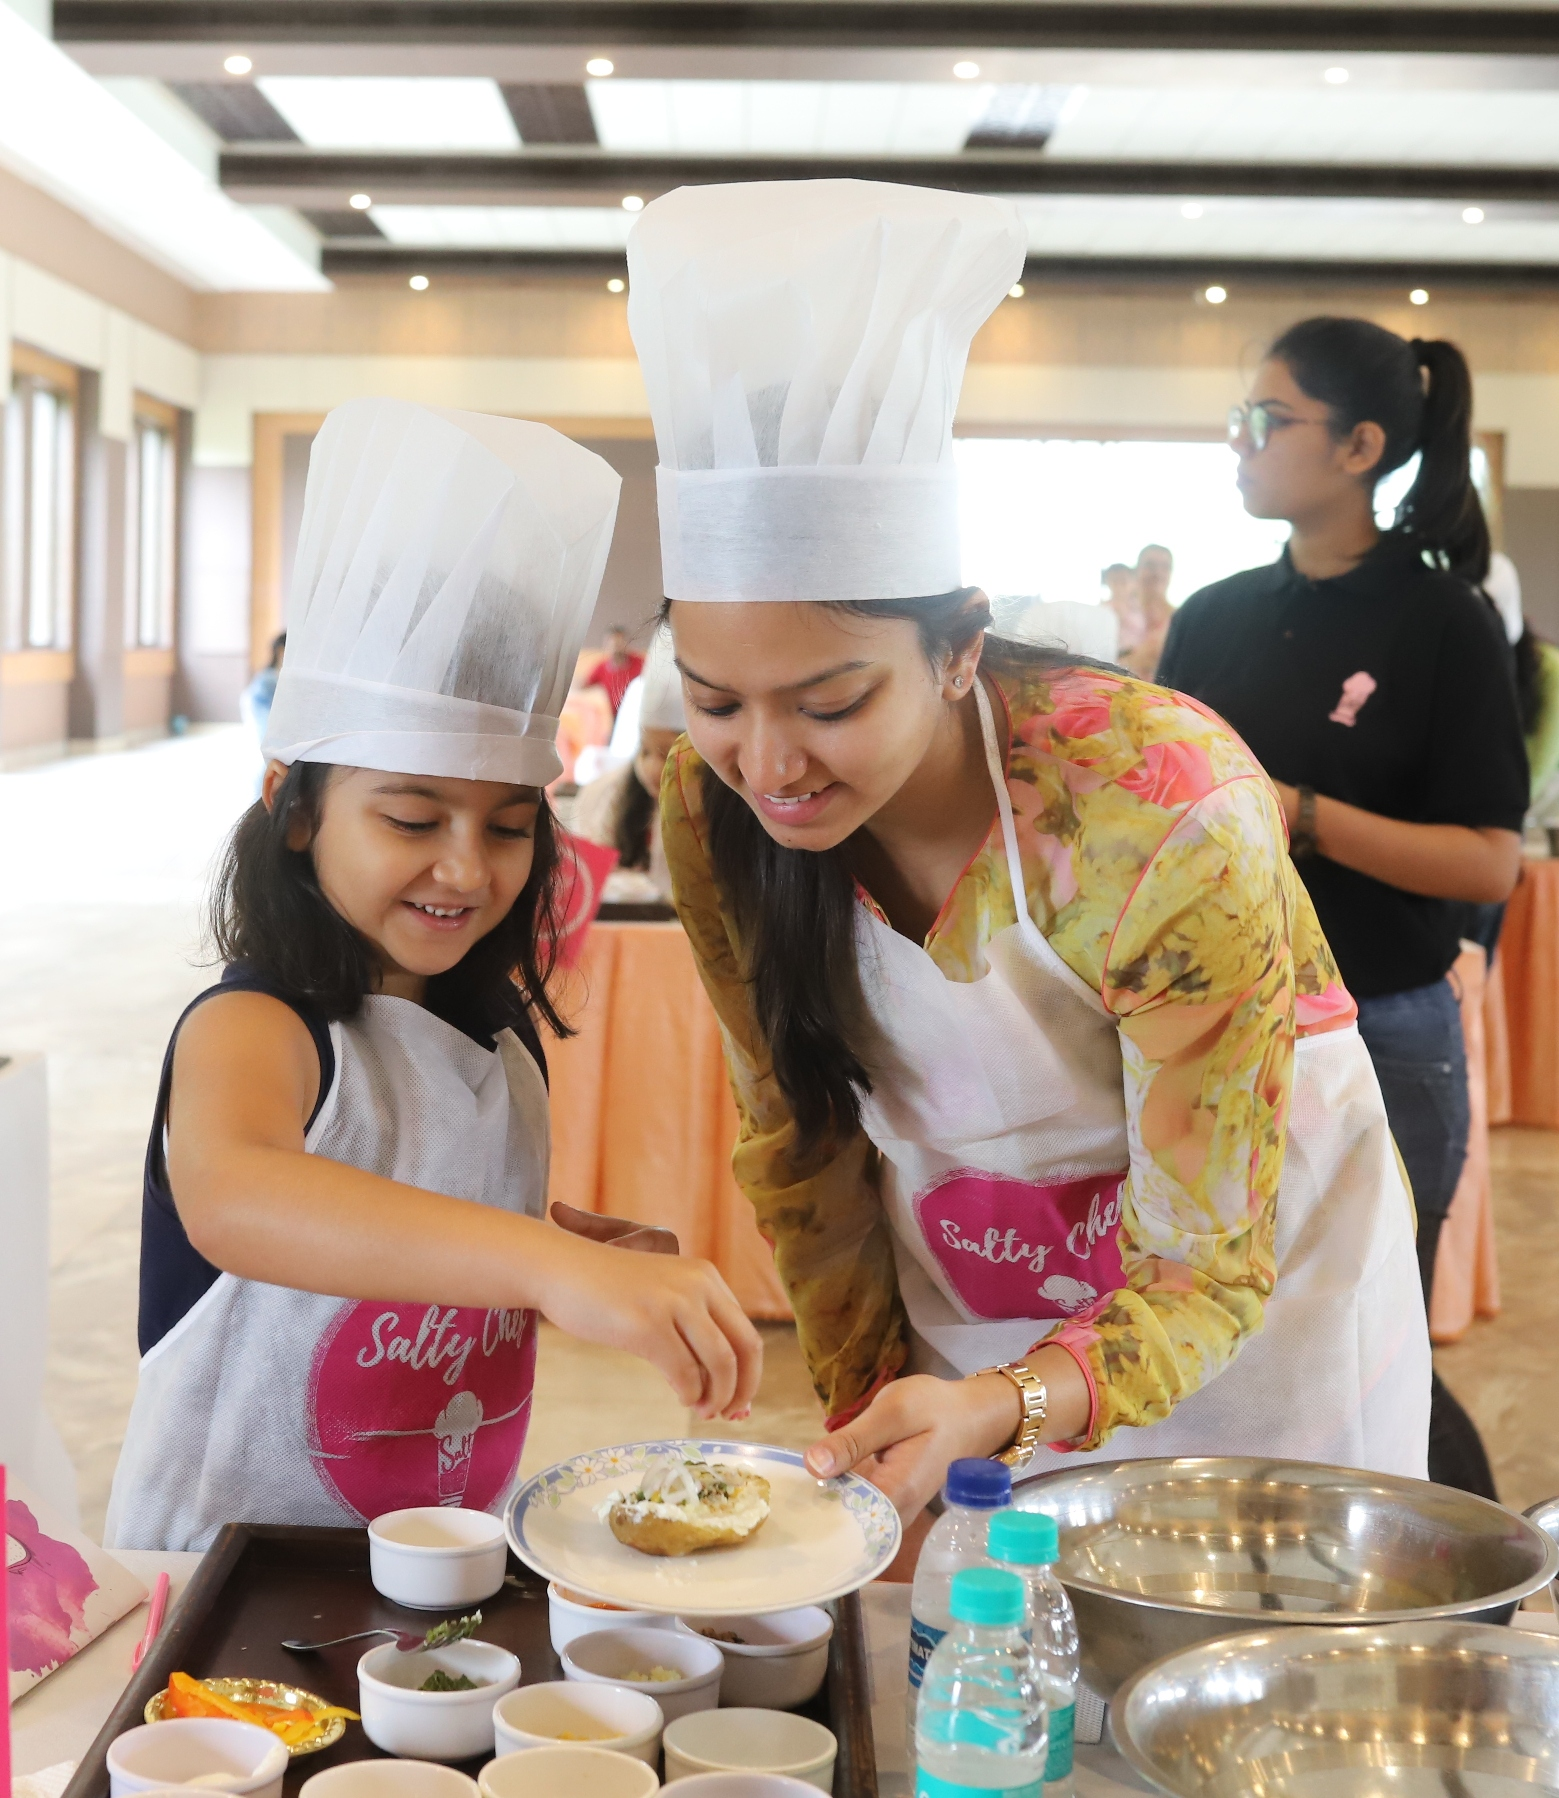 Mothers and Children Bond over Cookery in 'Mommy & Me' Workshop